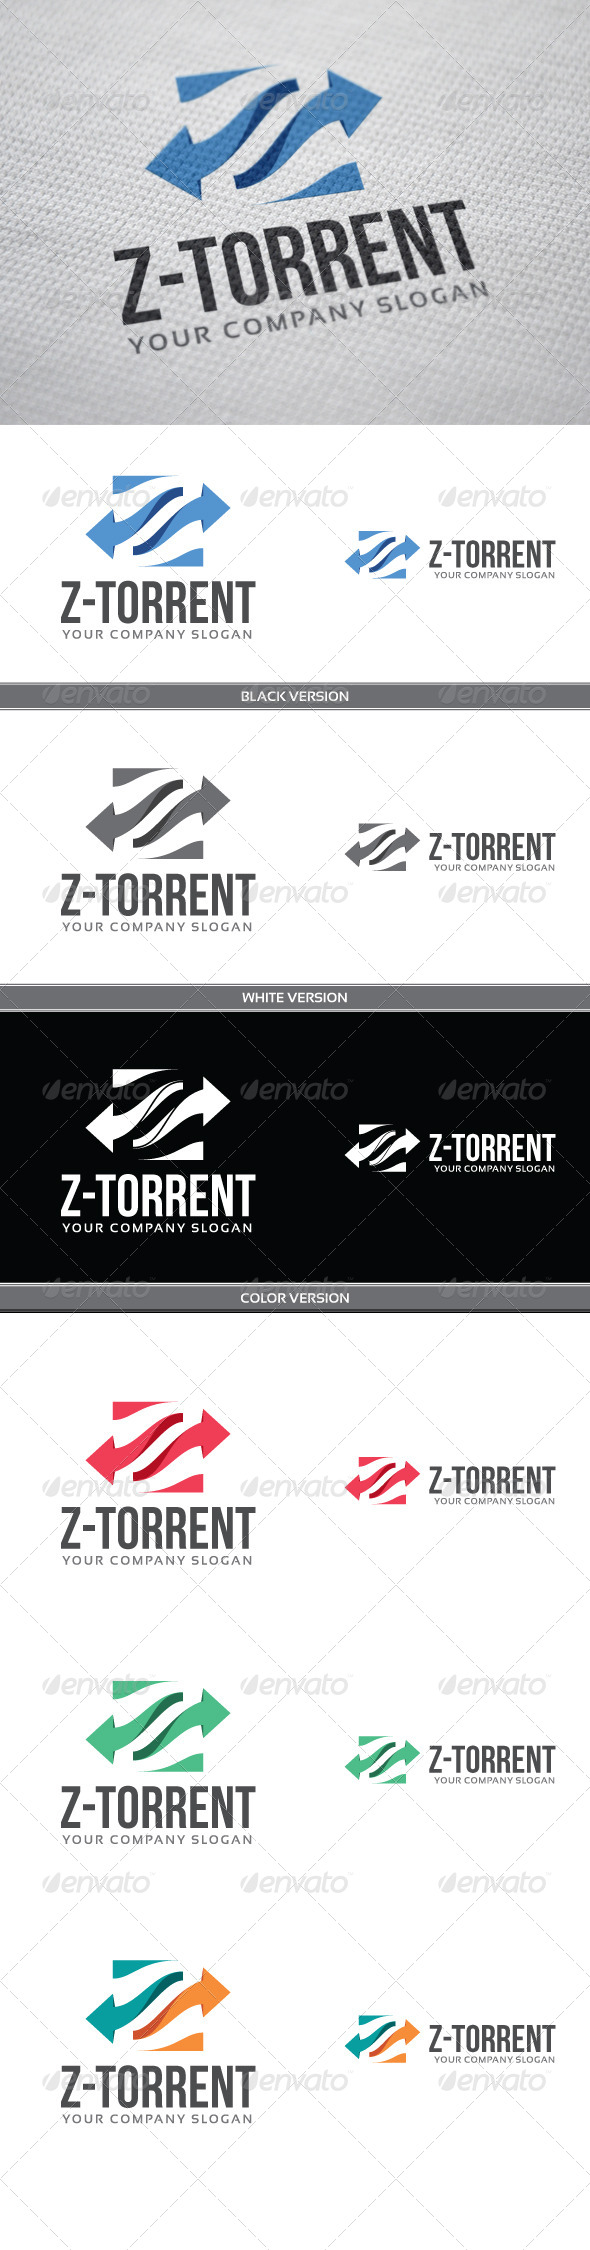 GraphicRiver Z-torrent 4065942